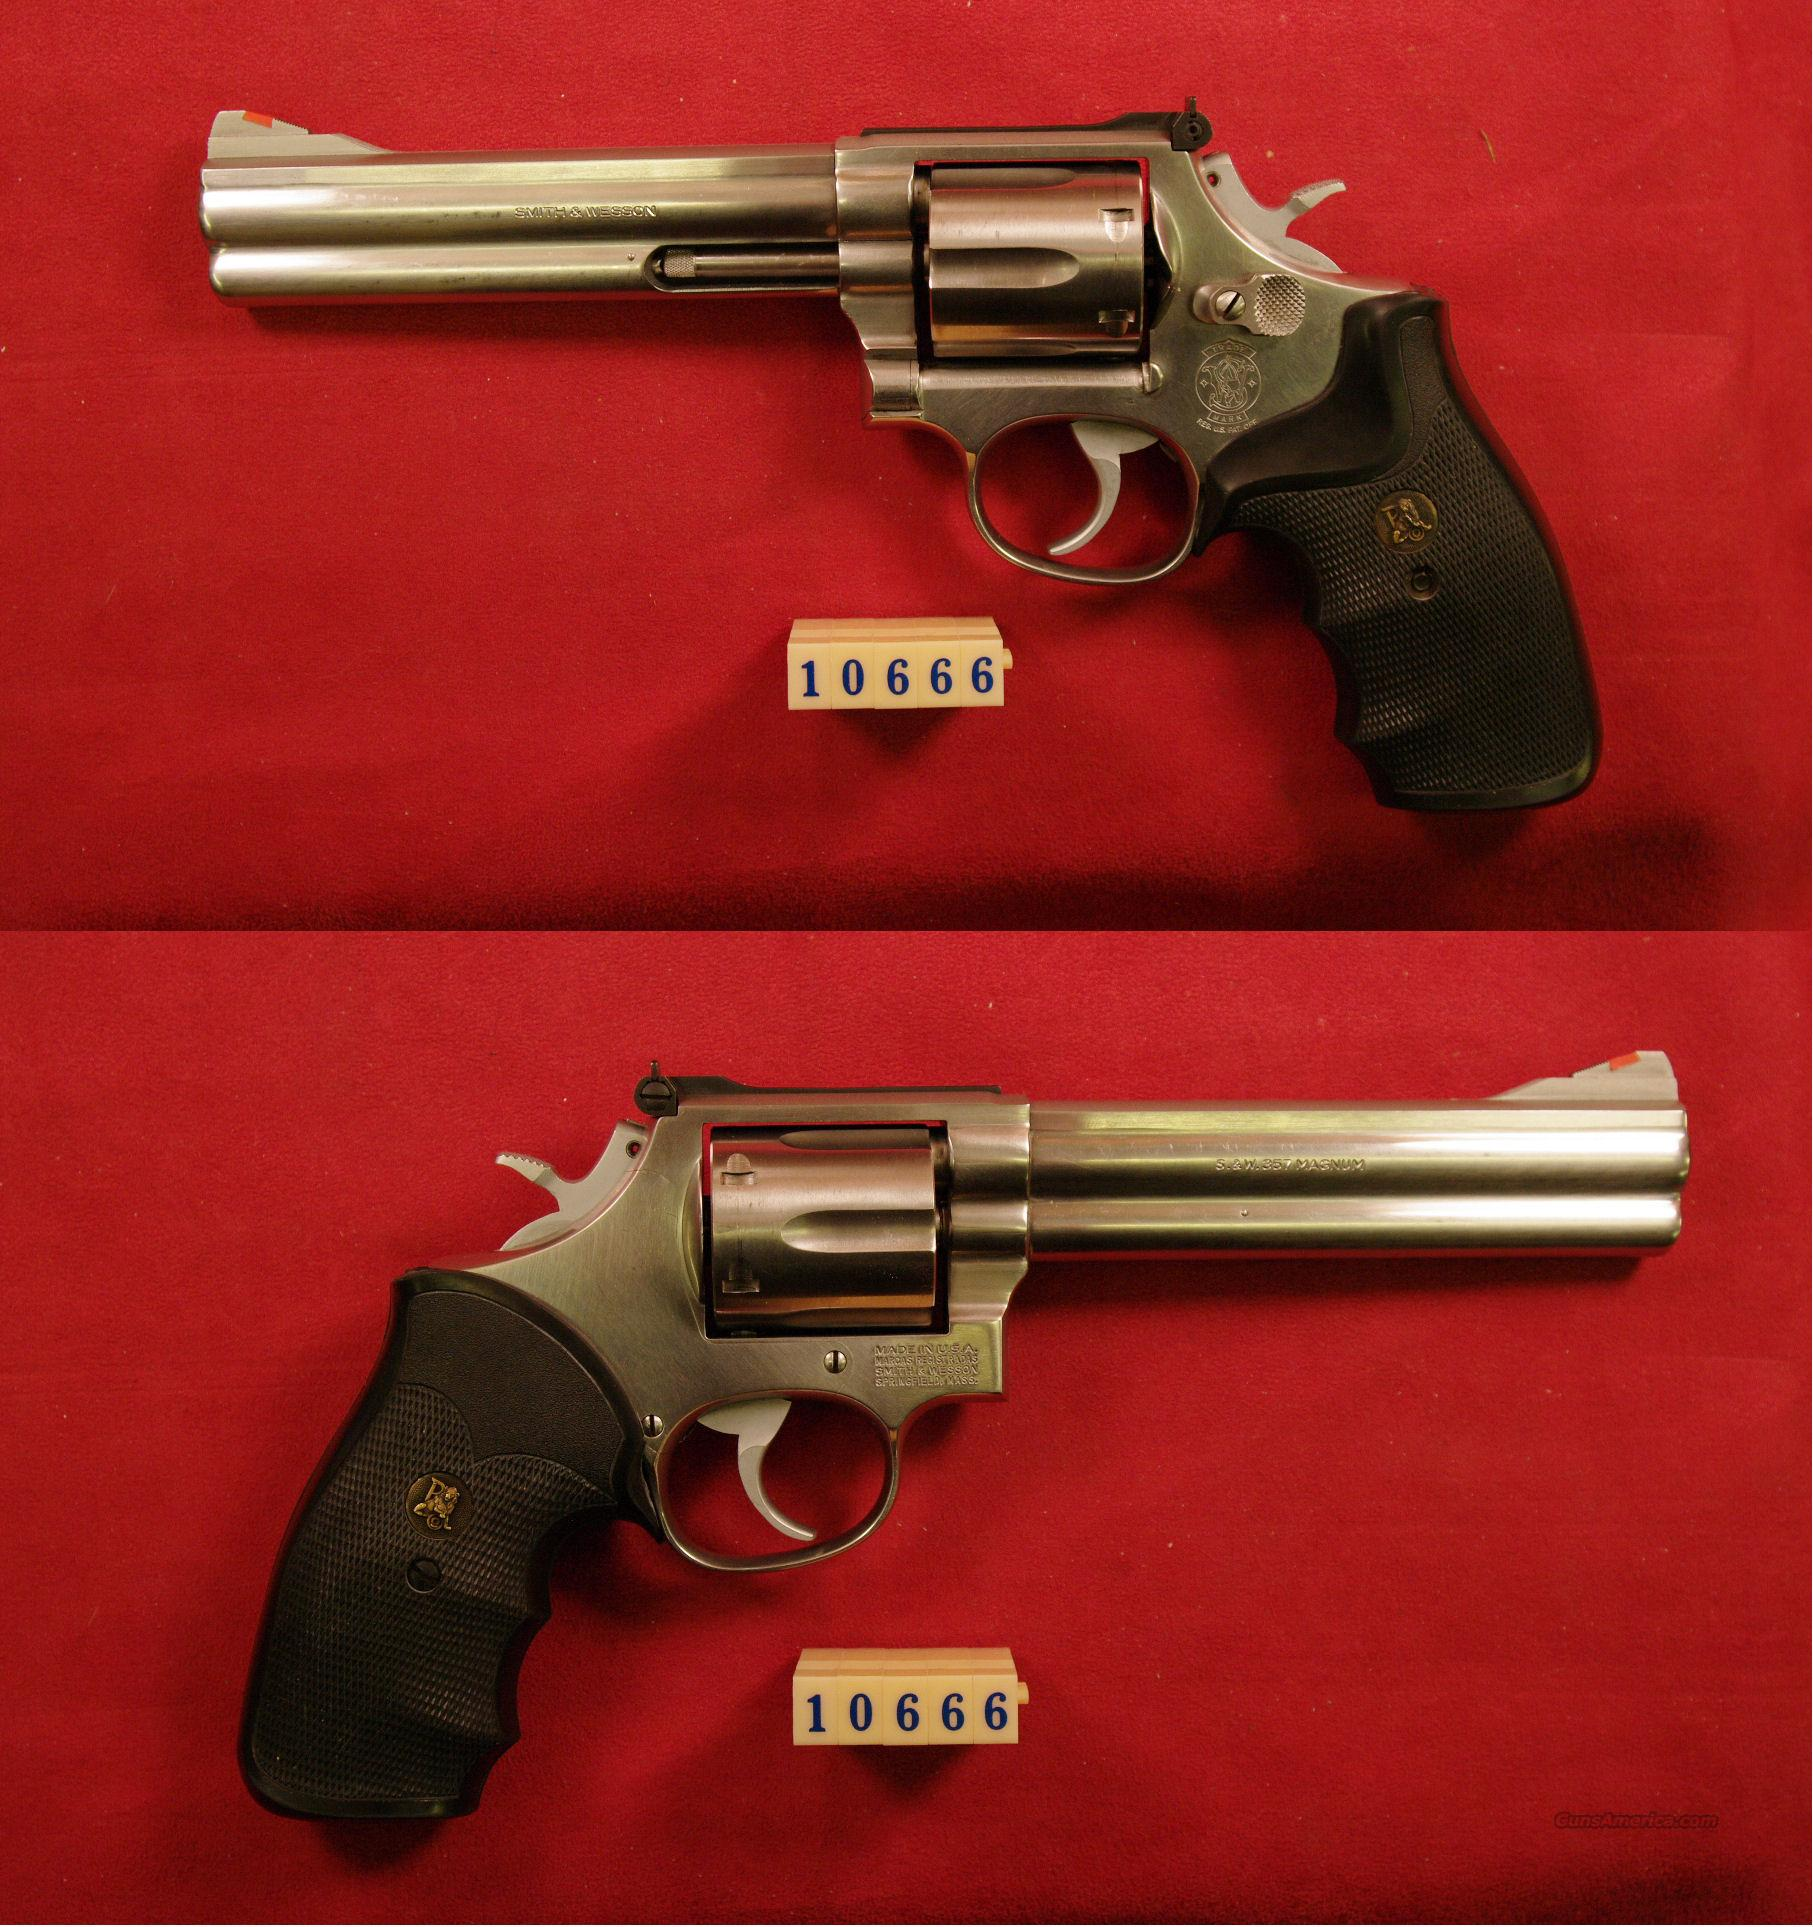 Smith & Wesson 686 .357 Magnum  Guns > Pistols > Smith & Wesson Revolvers > Full Frame Revolver